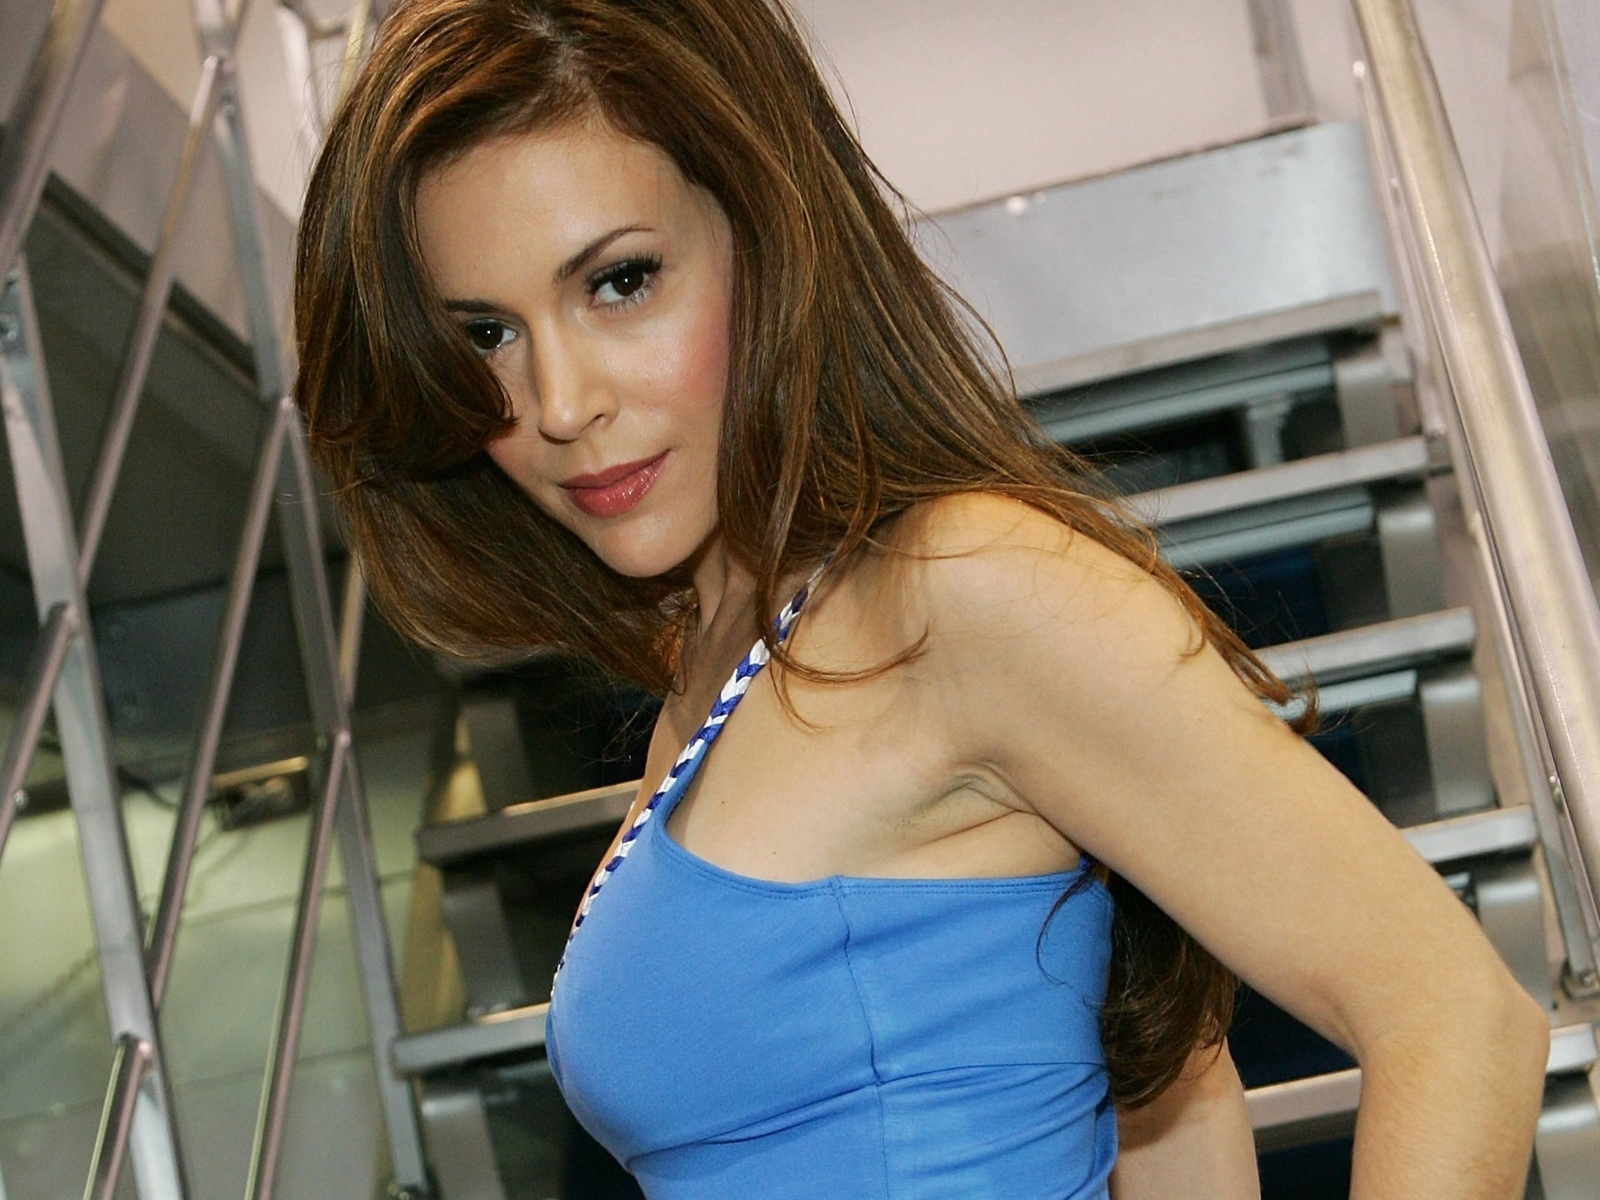 Alyssa Milano Wallpaper Alyssa Milano Wallpaper Alyssa Milano Wallpaper ...